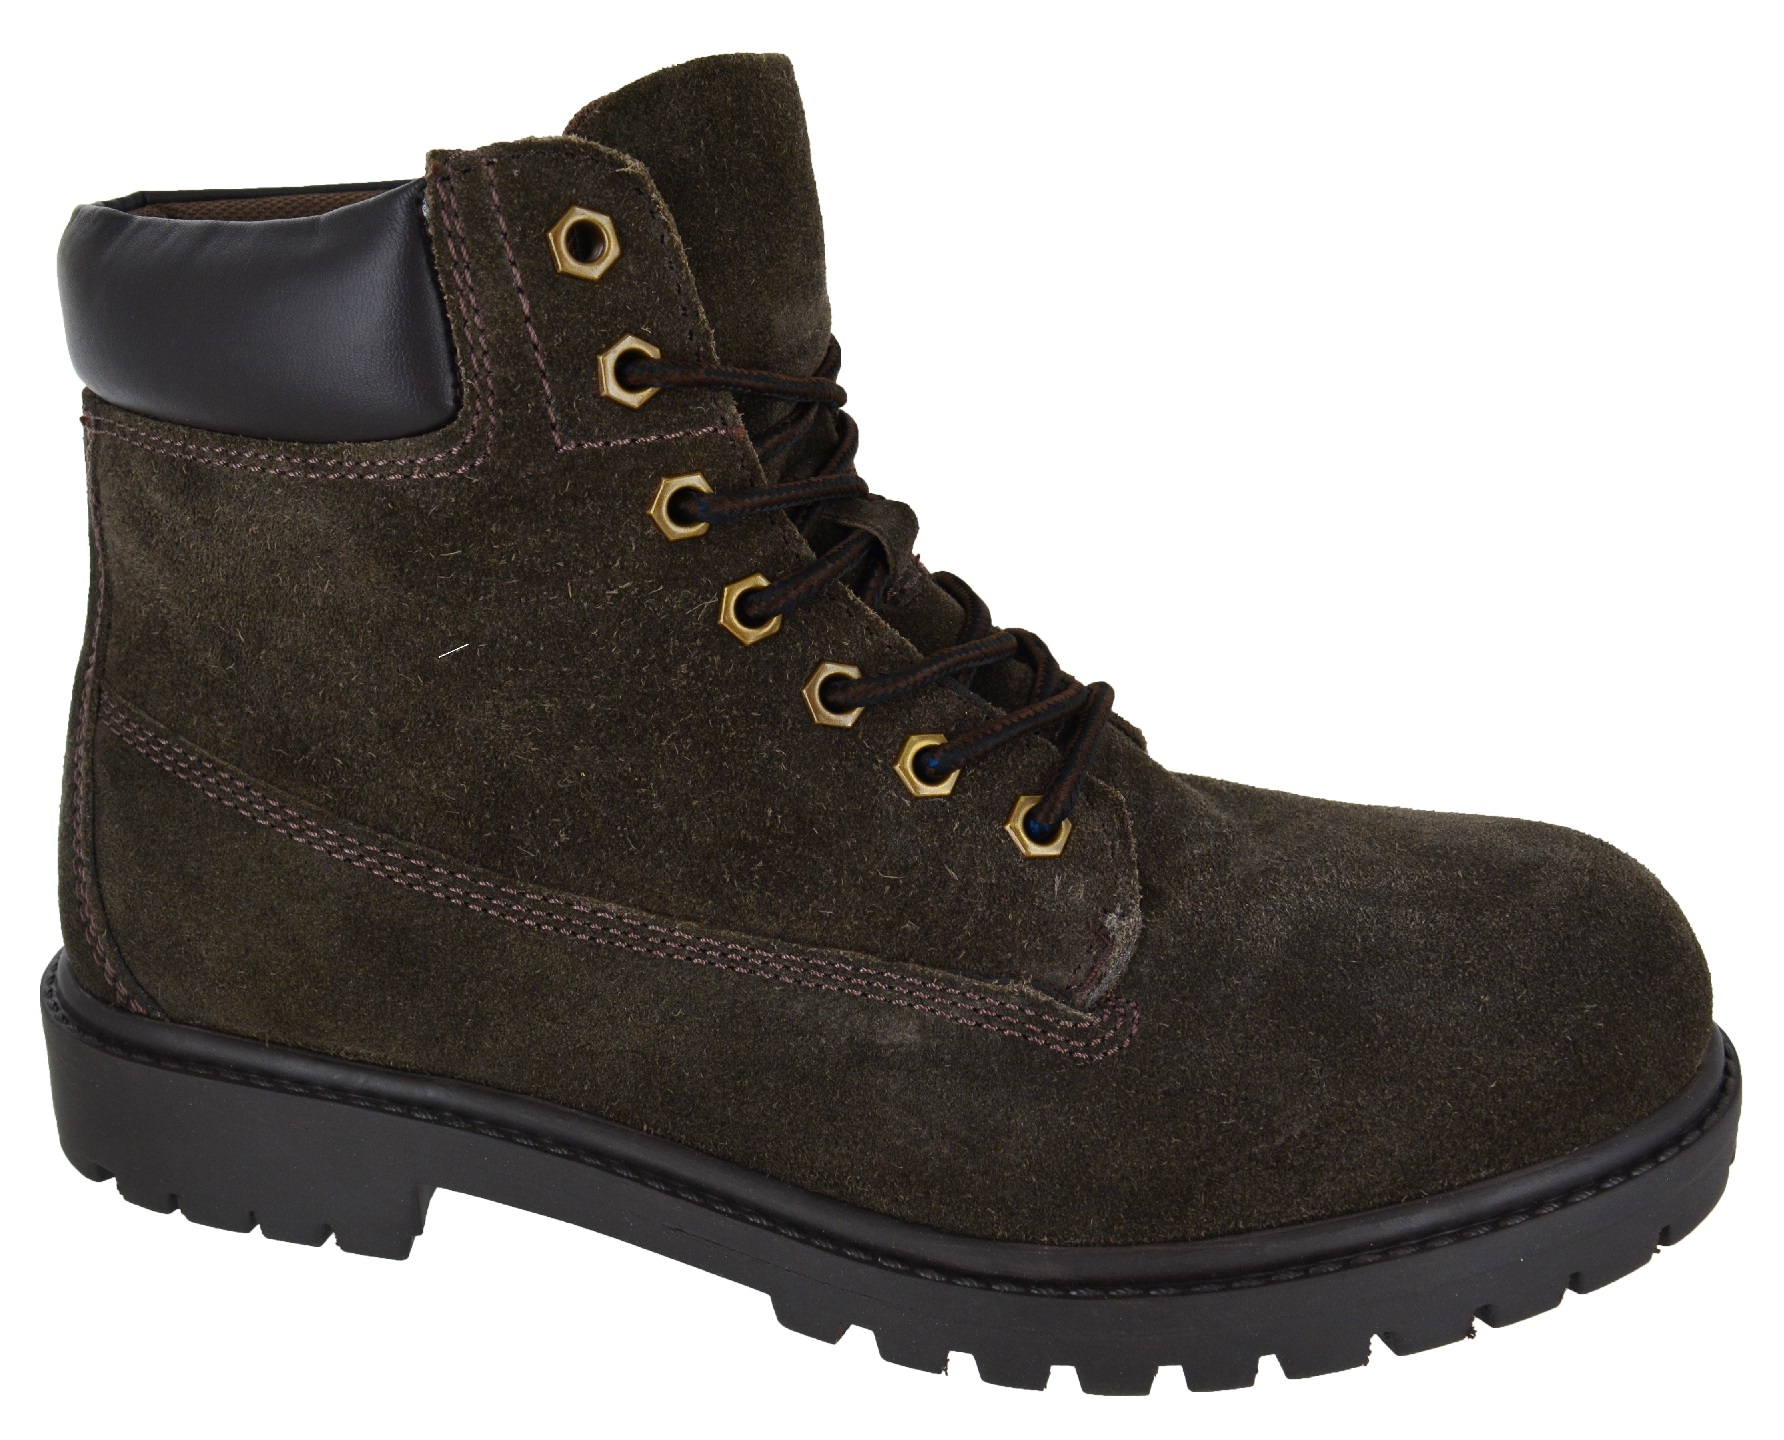 mens new leather hiking ankle lace up grip sole